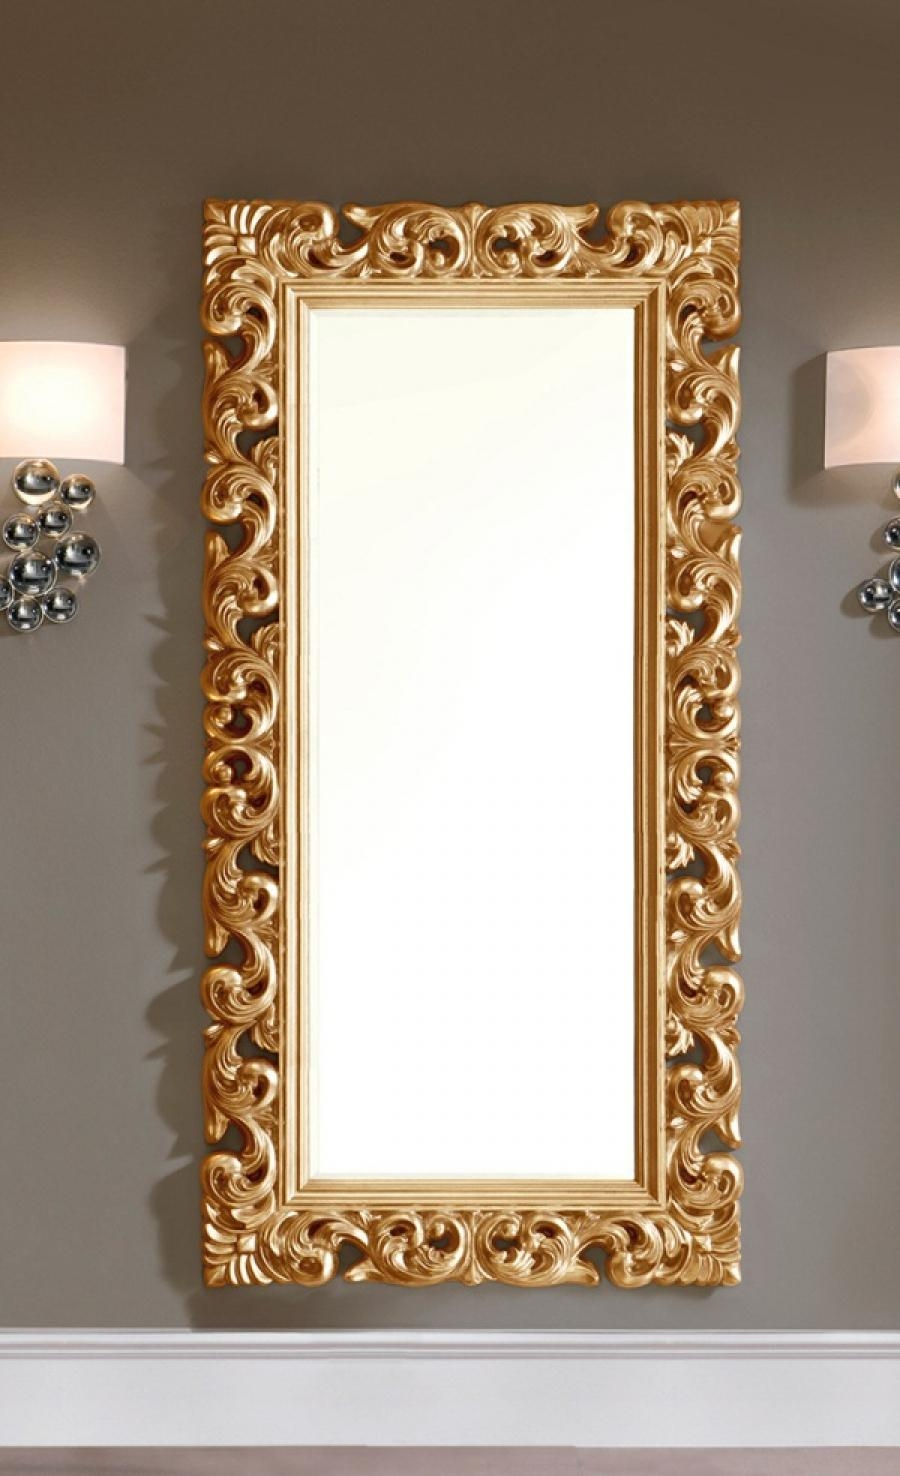 Large Modern Ornate Mirror In Gold Colour Finish With Regard To Modern Gold Mirror (Image 7 of 15)